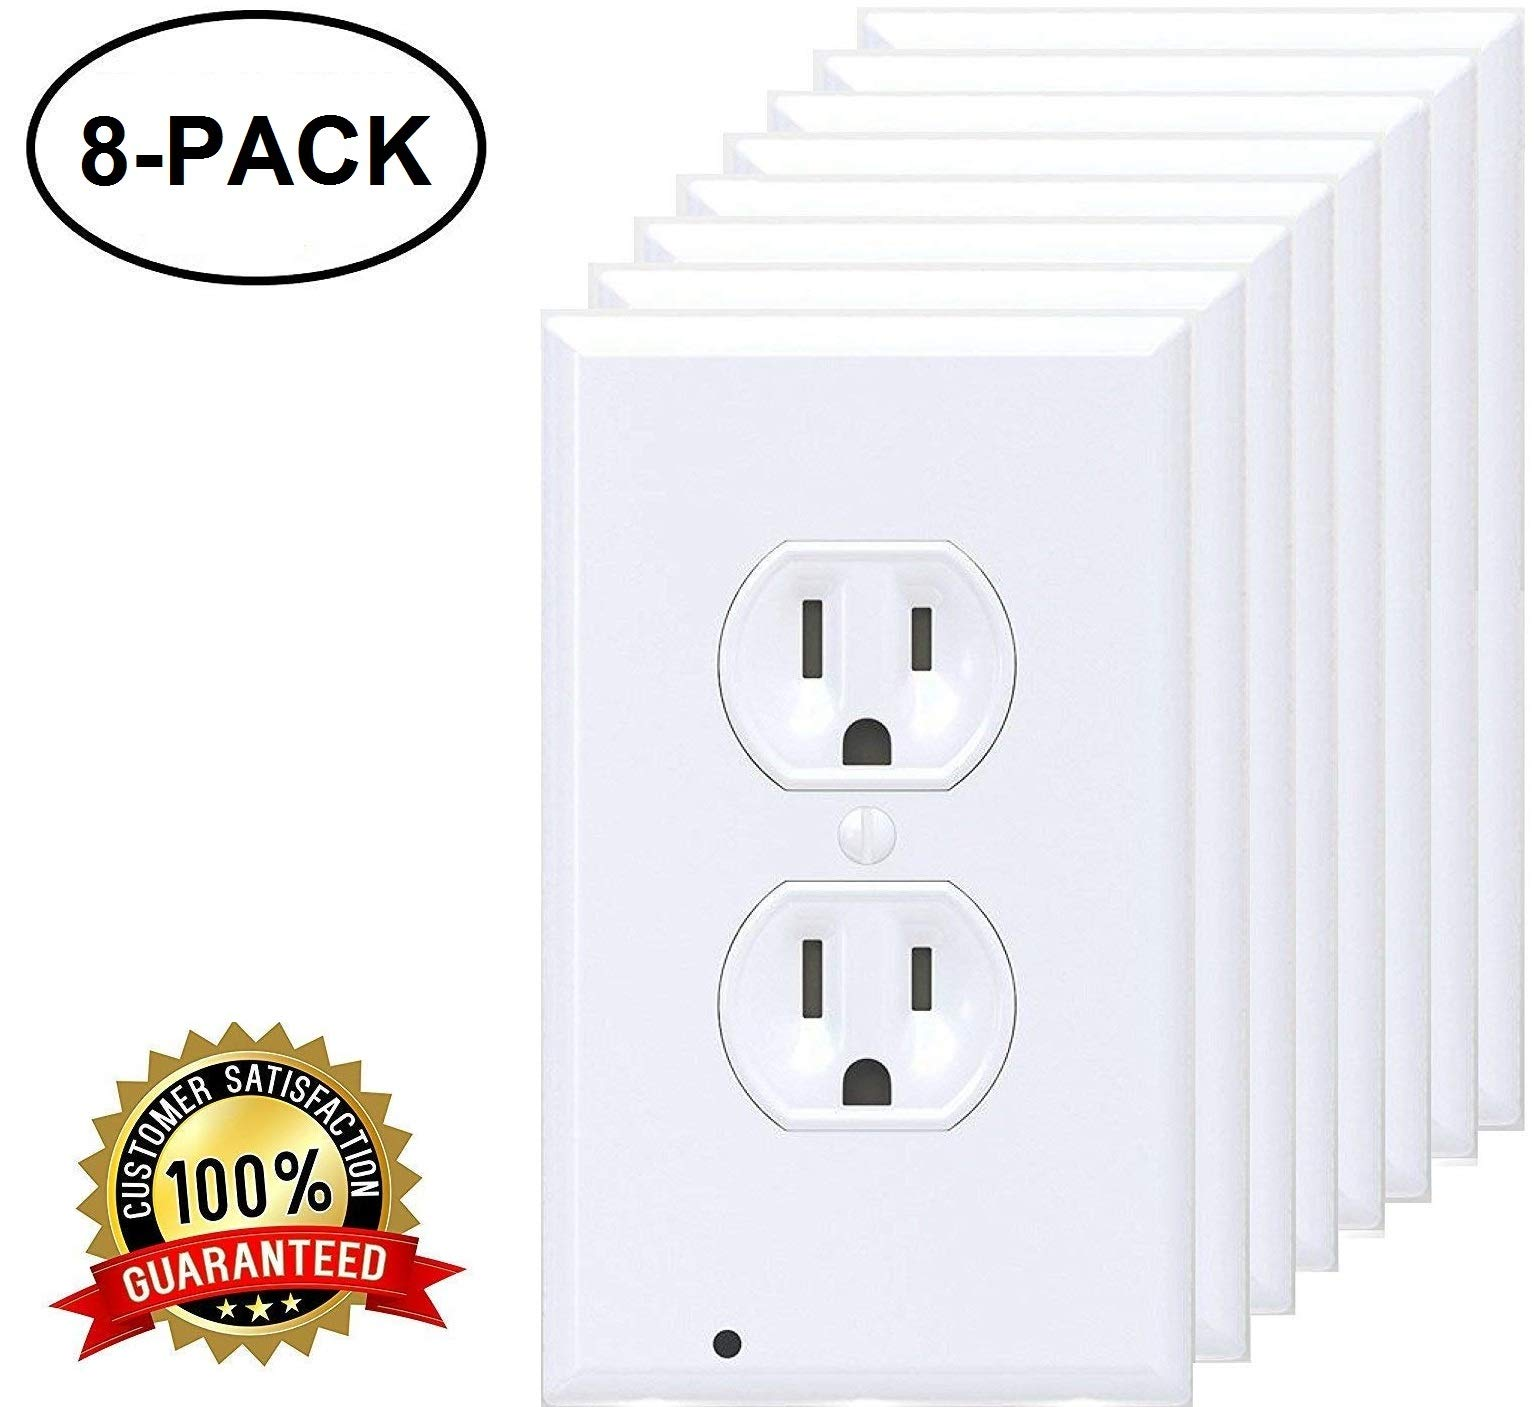 GuideLight LED Night Light Wall Outlet Cover Plate - FOR DUPLEX ELECTRICAL OUTLETS (8 pack)